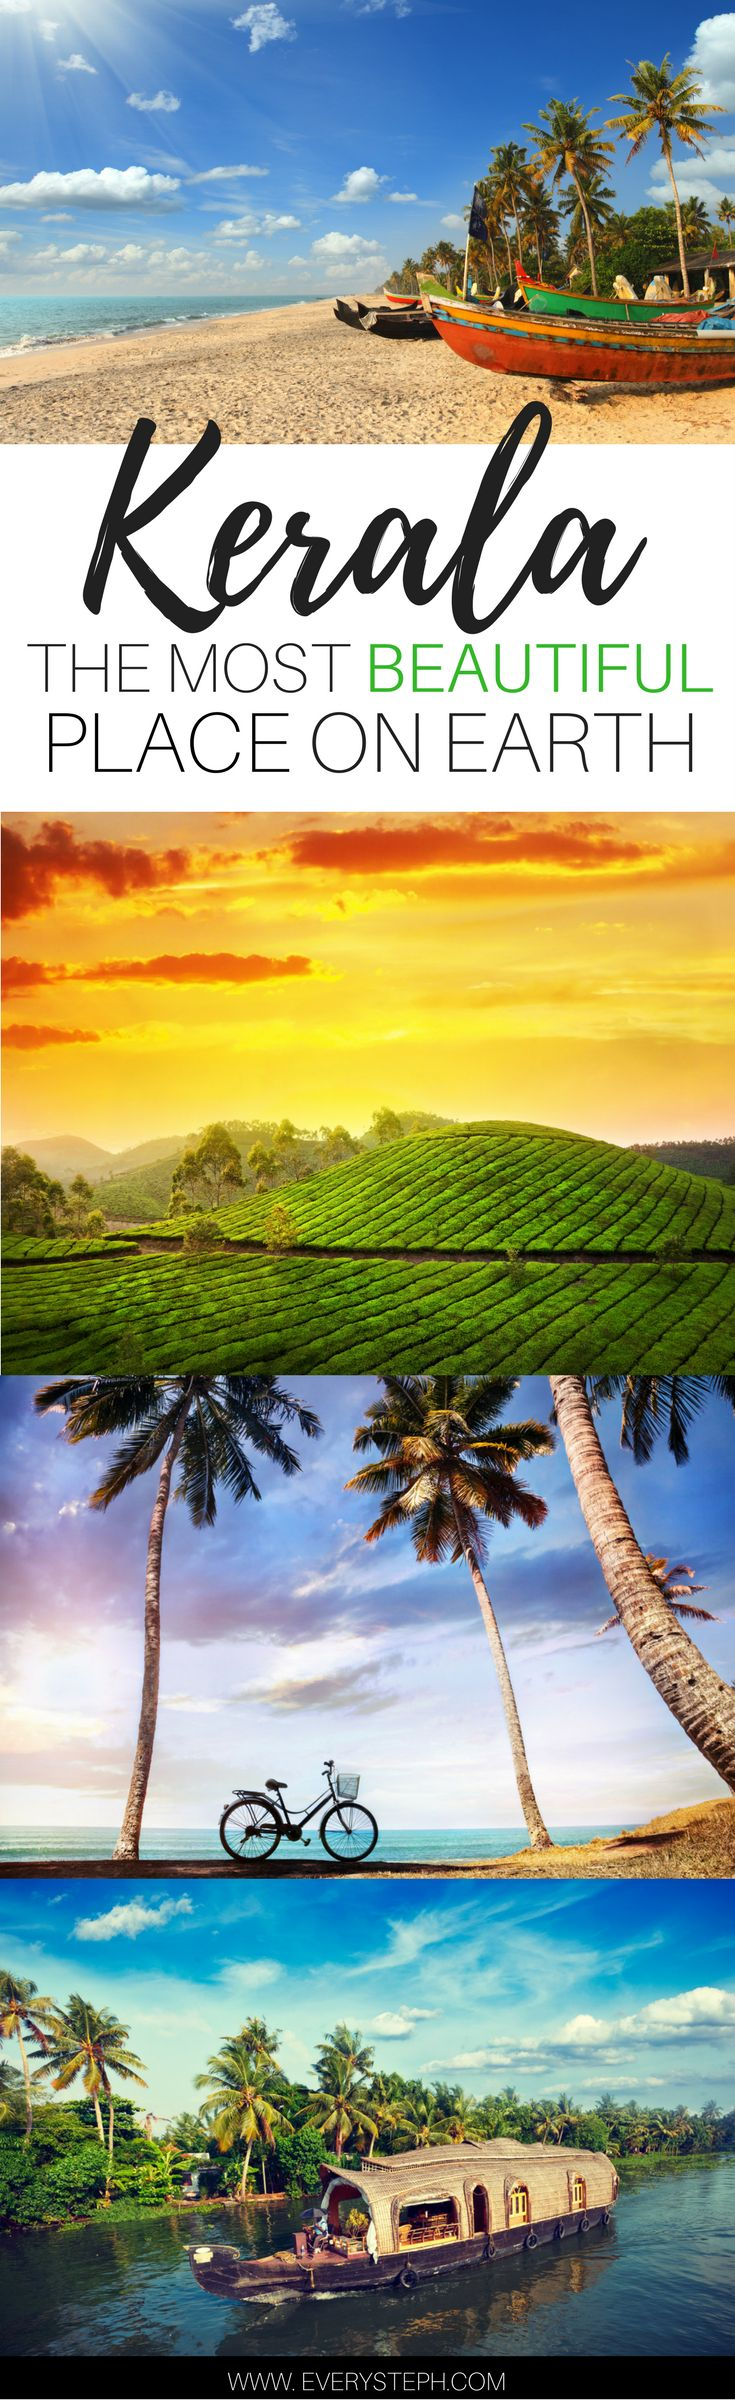 Why Kerala, India, must be the most beautiful place on Earth. An introduction to Kerala through the 5 senses. Backwaters, houseboats, the Munnar tea plantations, beaches, and temples...Kerala is all of this and much more!   | India Travel Tips | Travel Inspiration | Kerala Saree | a post by Every Steph